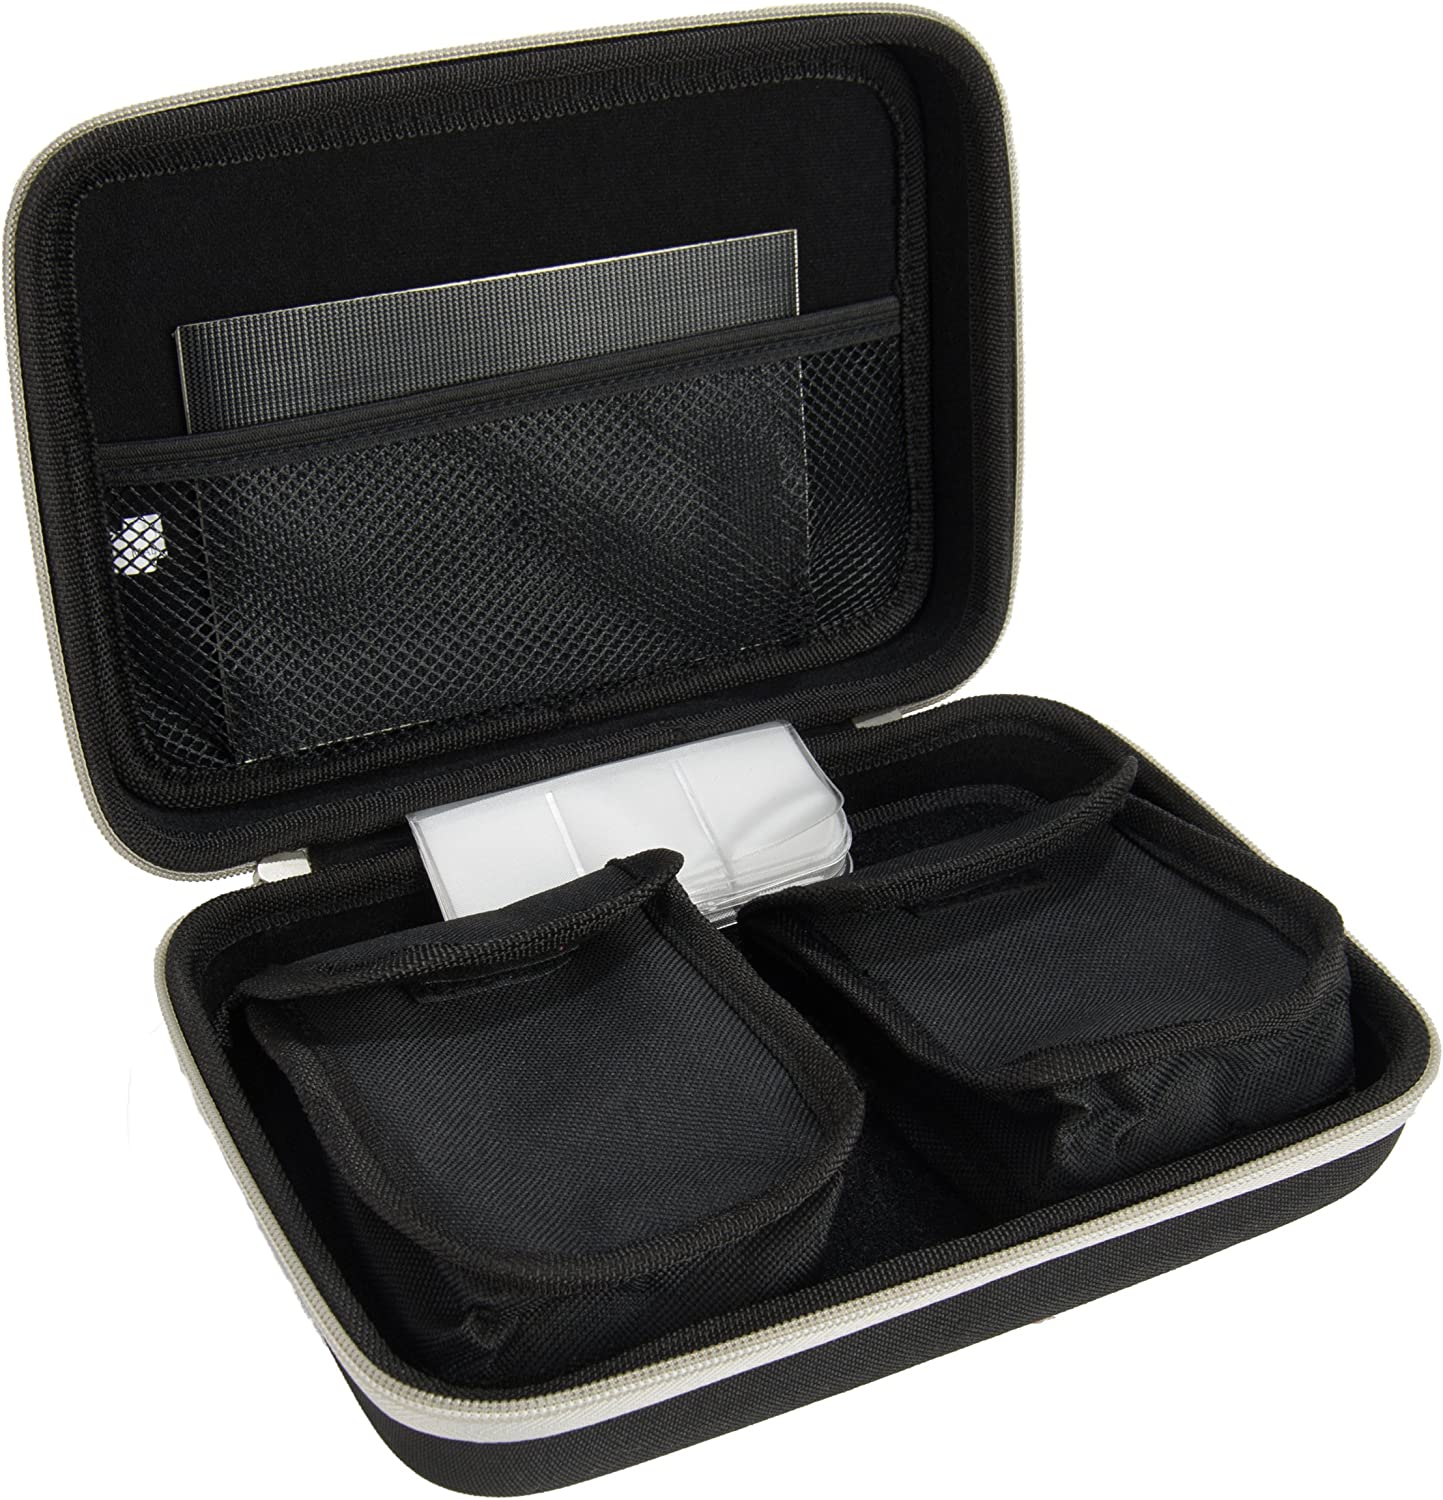 Black, Red Nylon Exterior Carrying Case with Protective Hard Shell for BNISE Binoculars Harlin